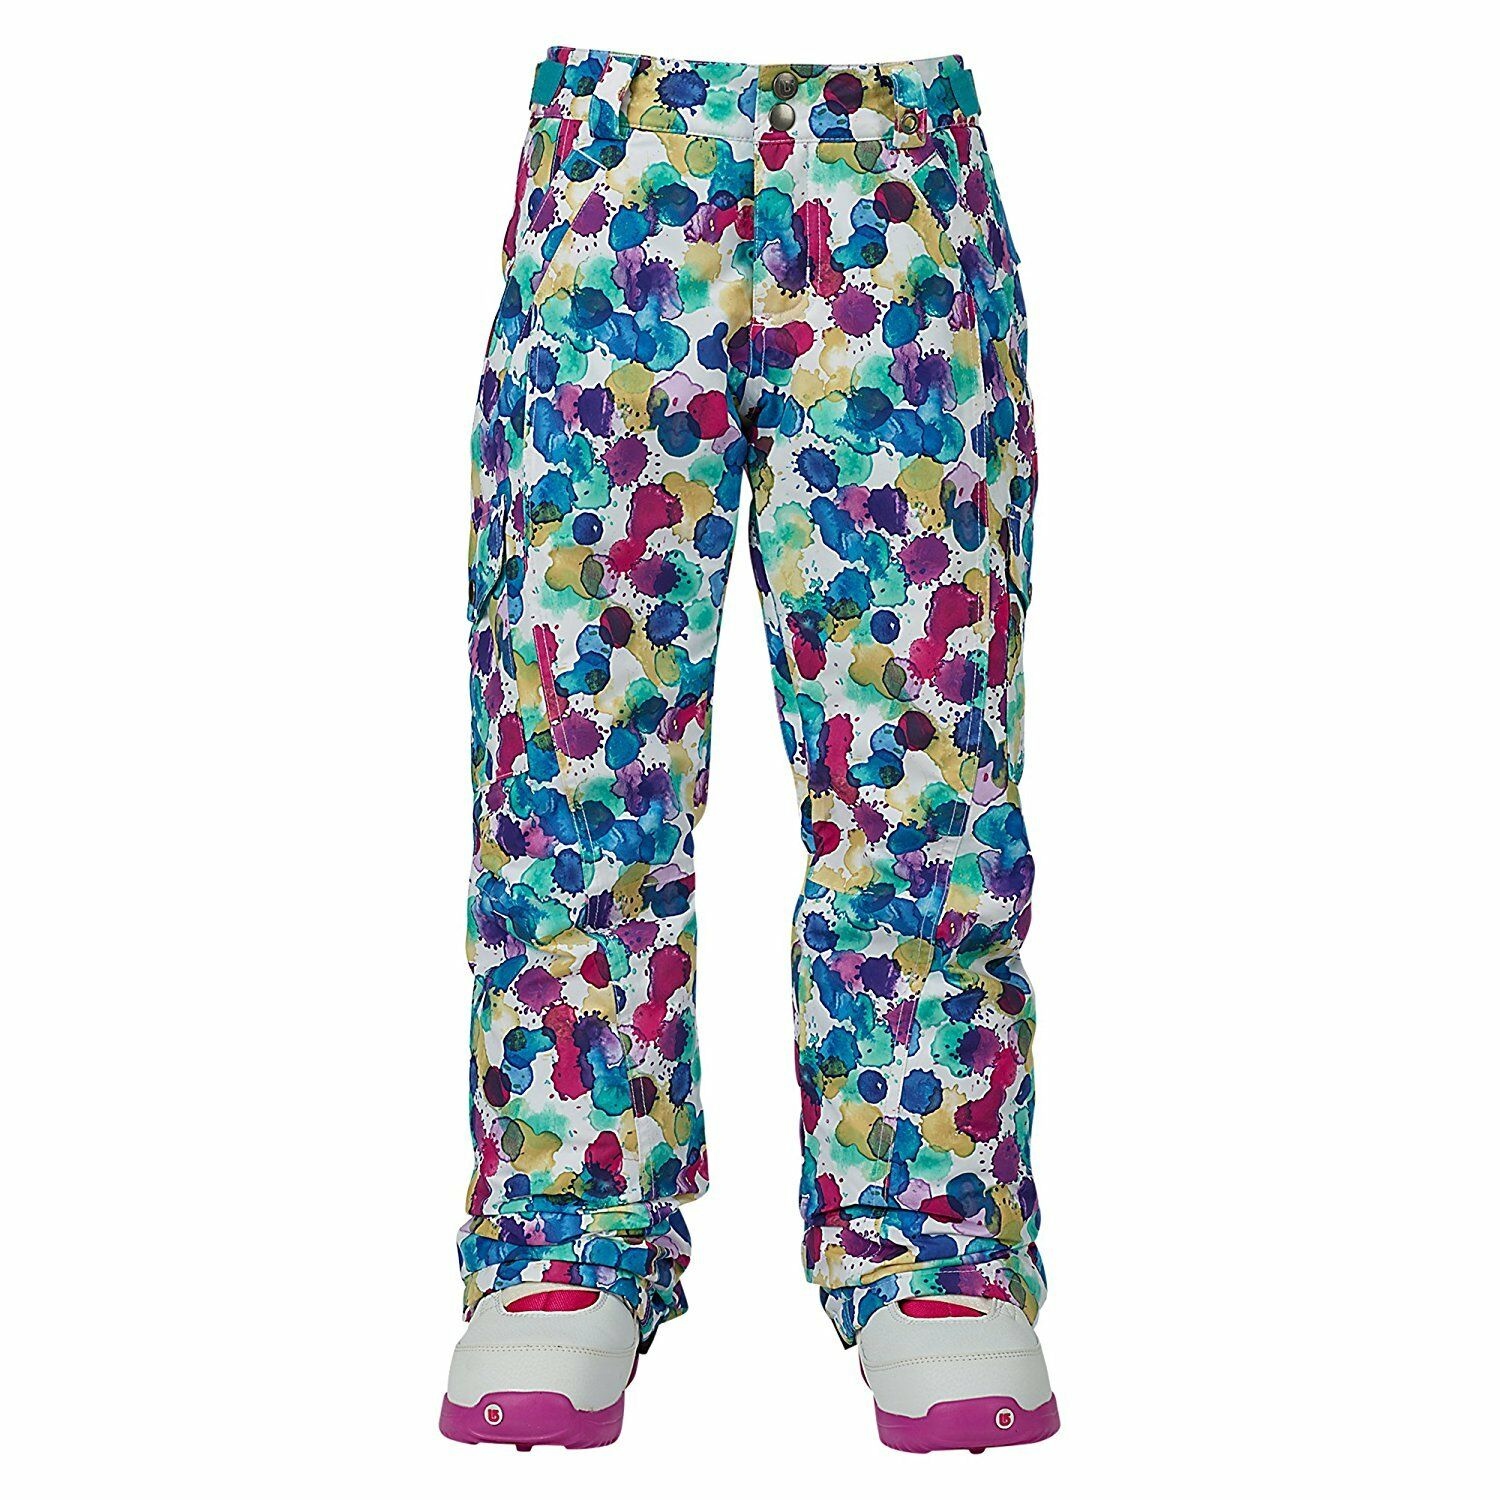 BURTON Girl's ELITE Cargo Snow Pants - Rainbow Drops - Large - NWT